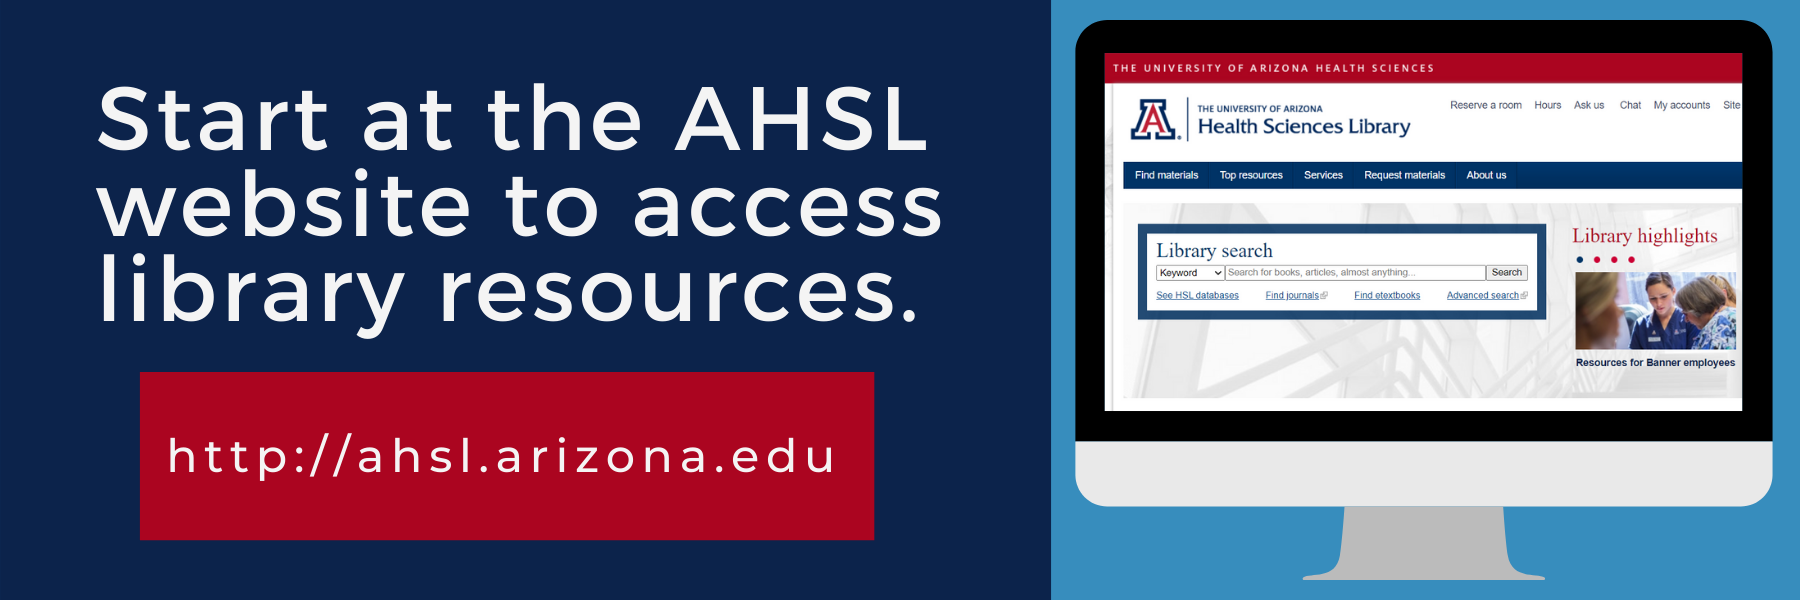 Start at the ahsl website to access library resources. Picture of the website on a computer.